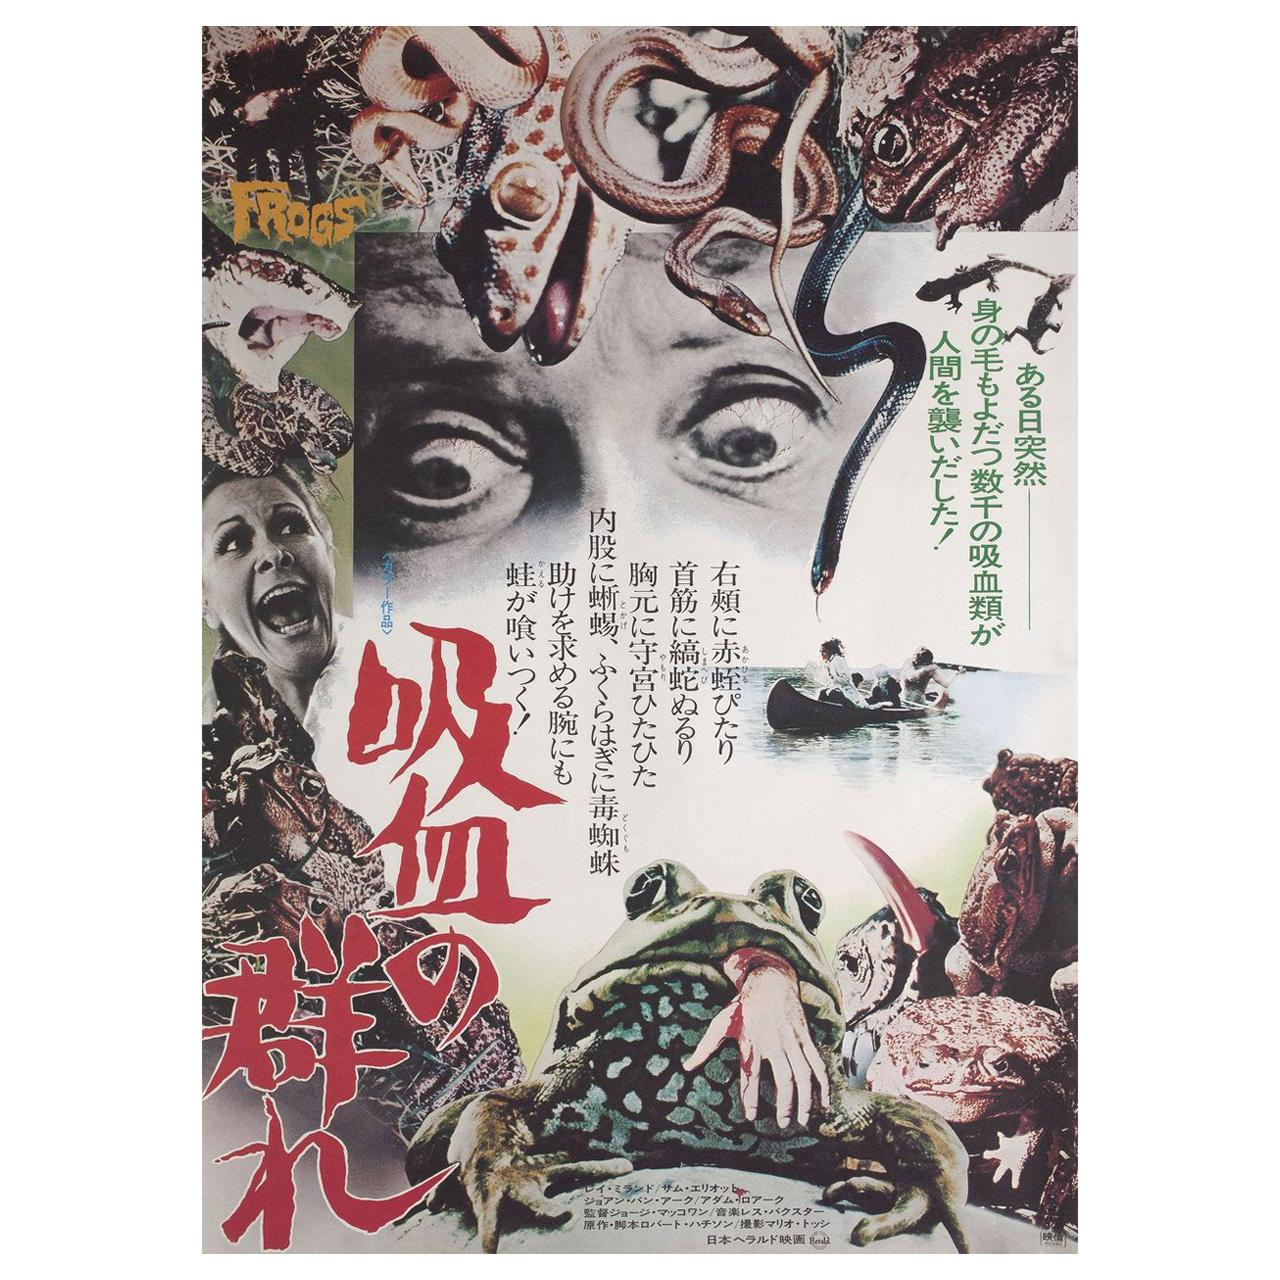 Frogs 1975 Japanese B2 Film Poster